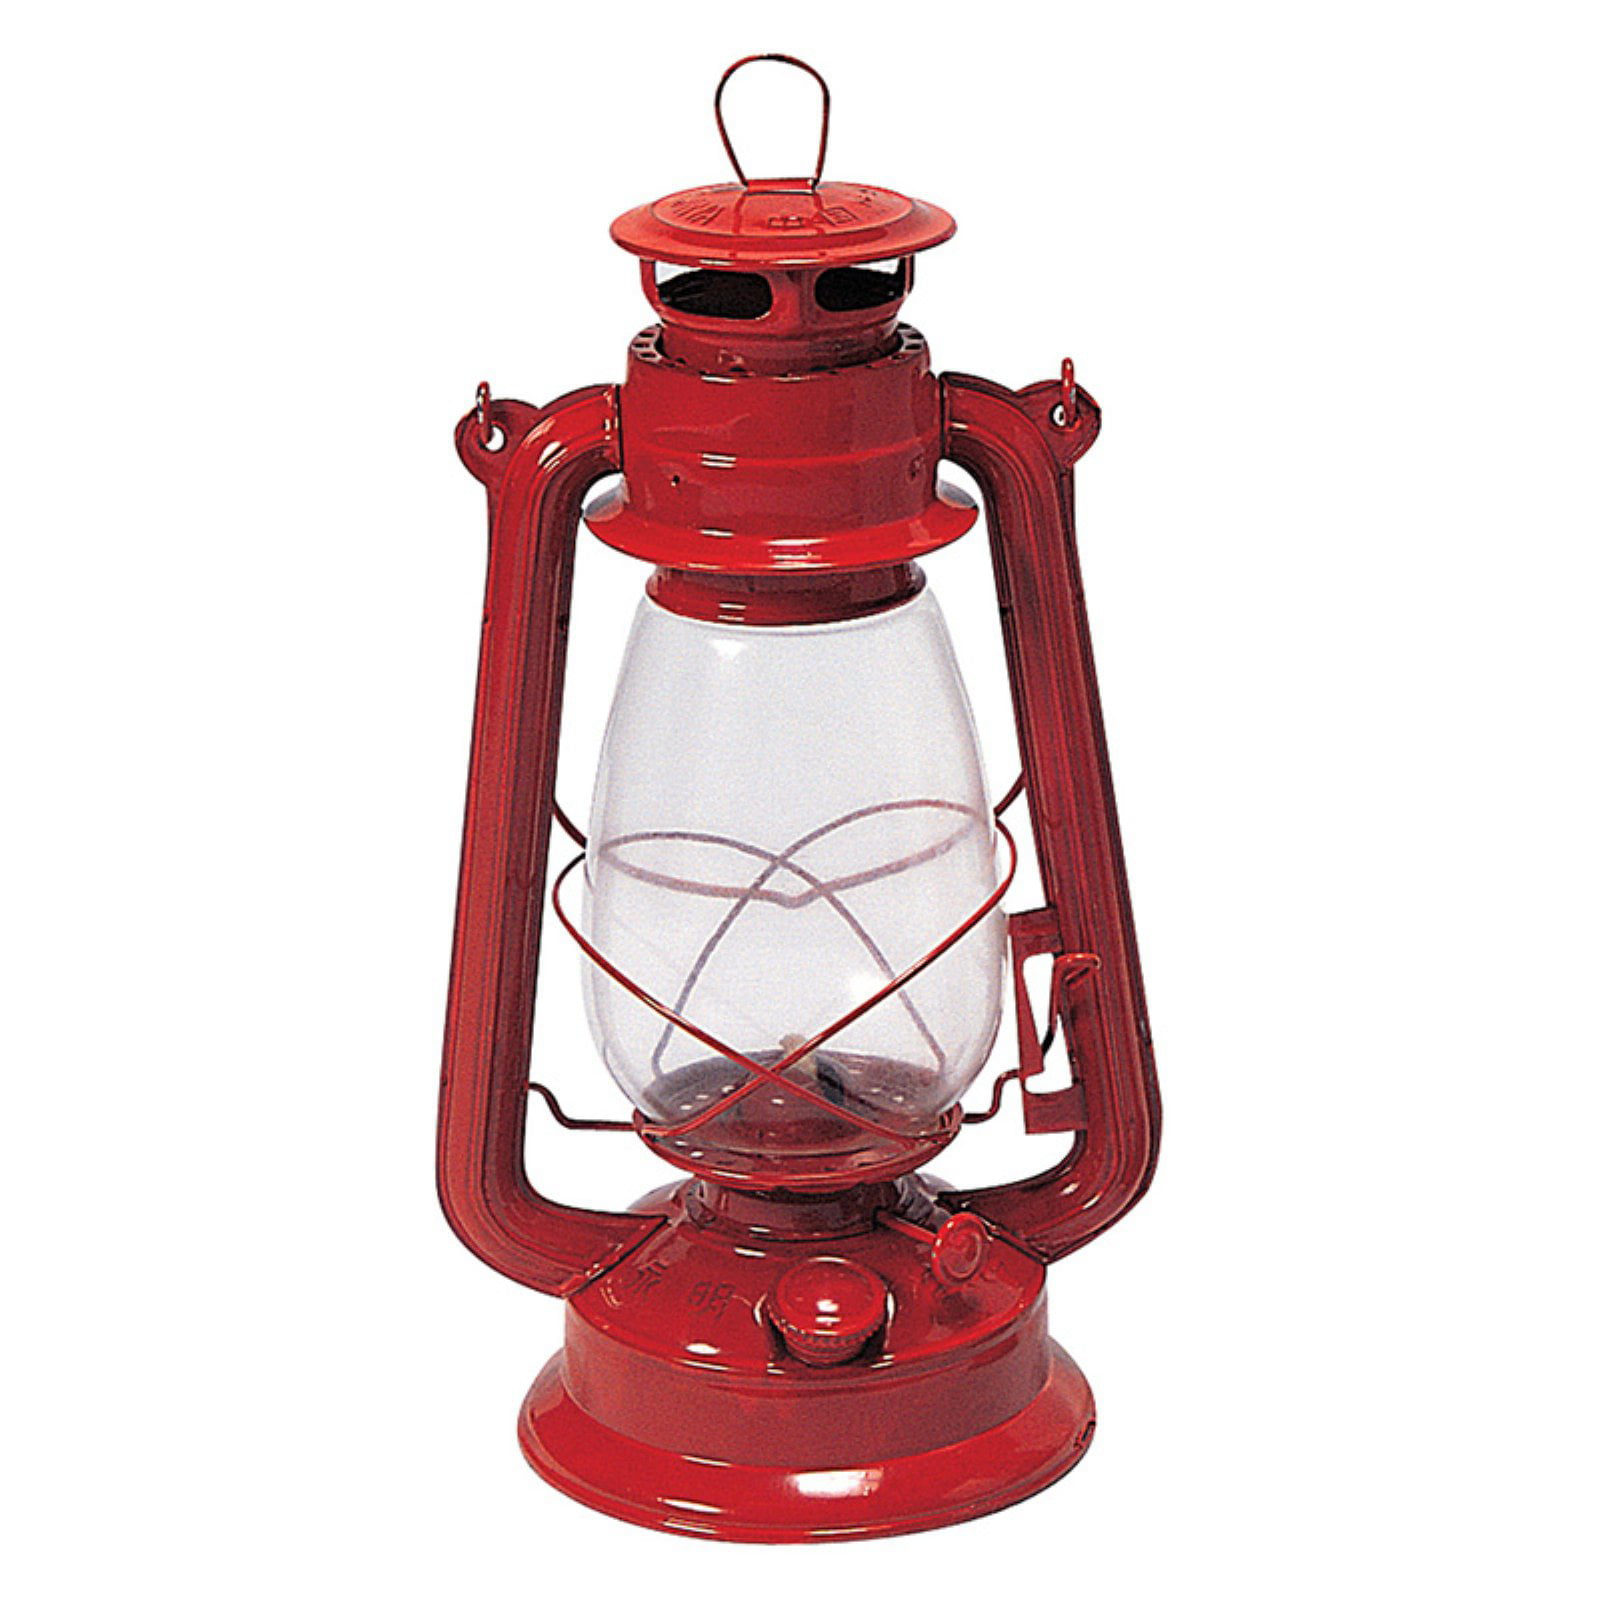 "Stansport Kerosene Lantern 12"" by Stansport"